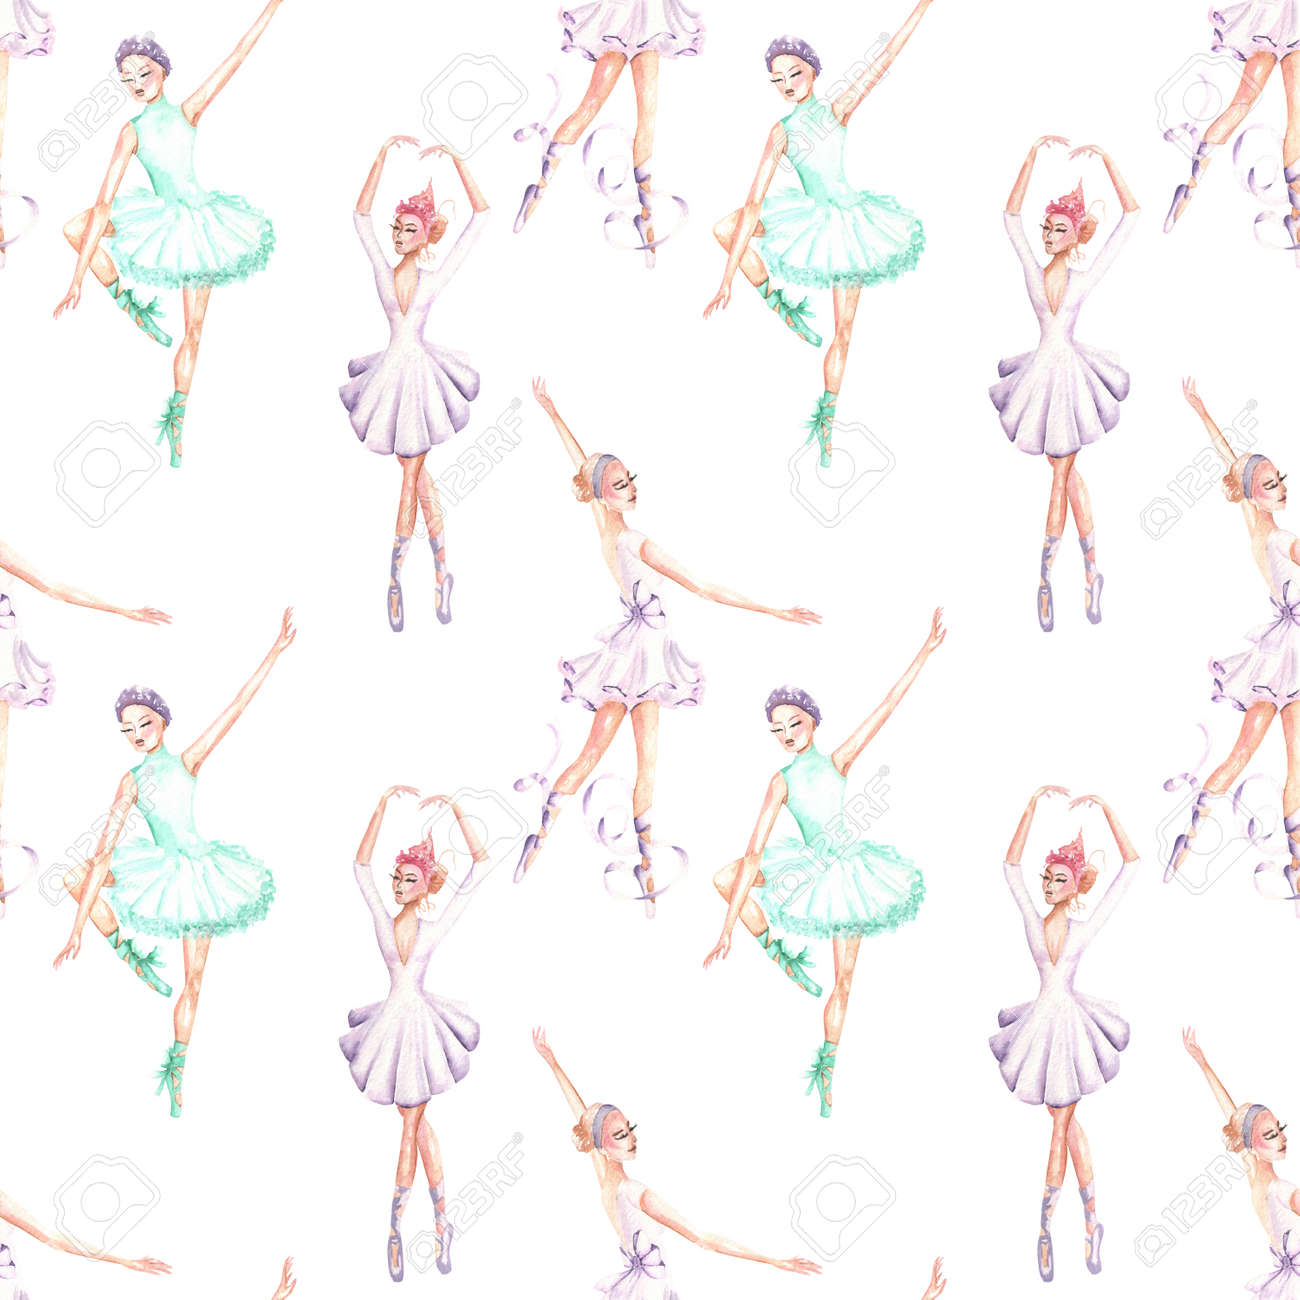 Seamless pattern of ballet dancers royalty free stock photography - Seamless Pattern With Watercolor Ballet Dancers Hand Drawn Isolated On A White Background Stock Photo